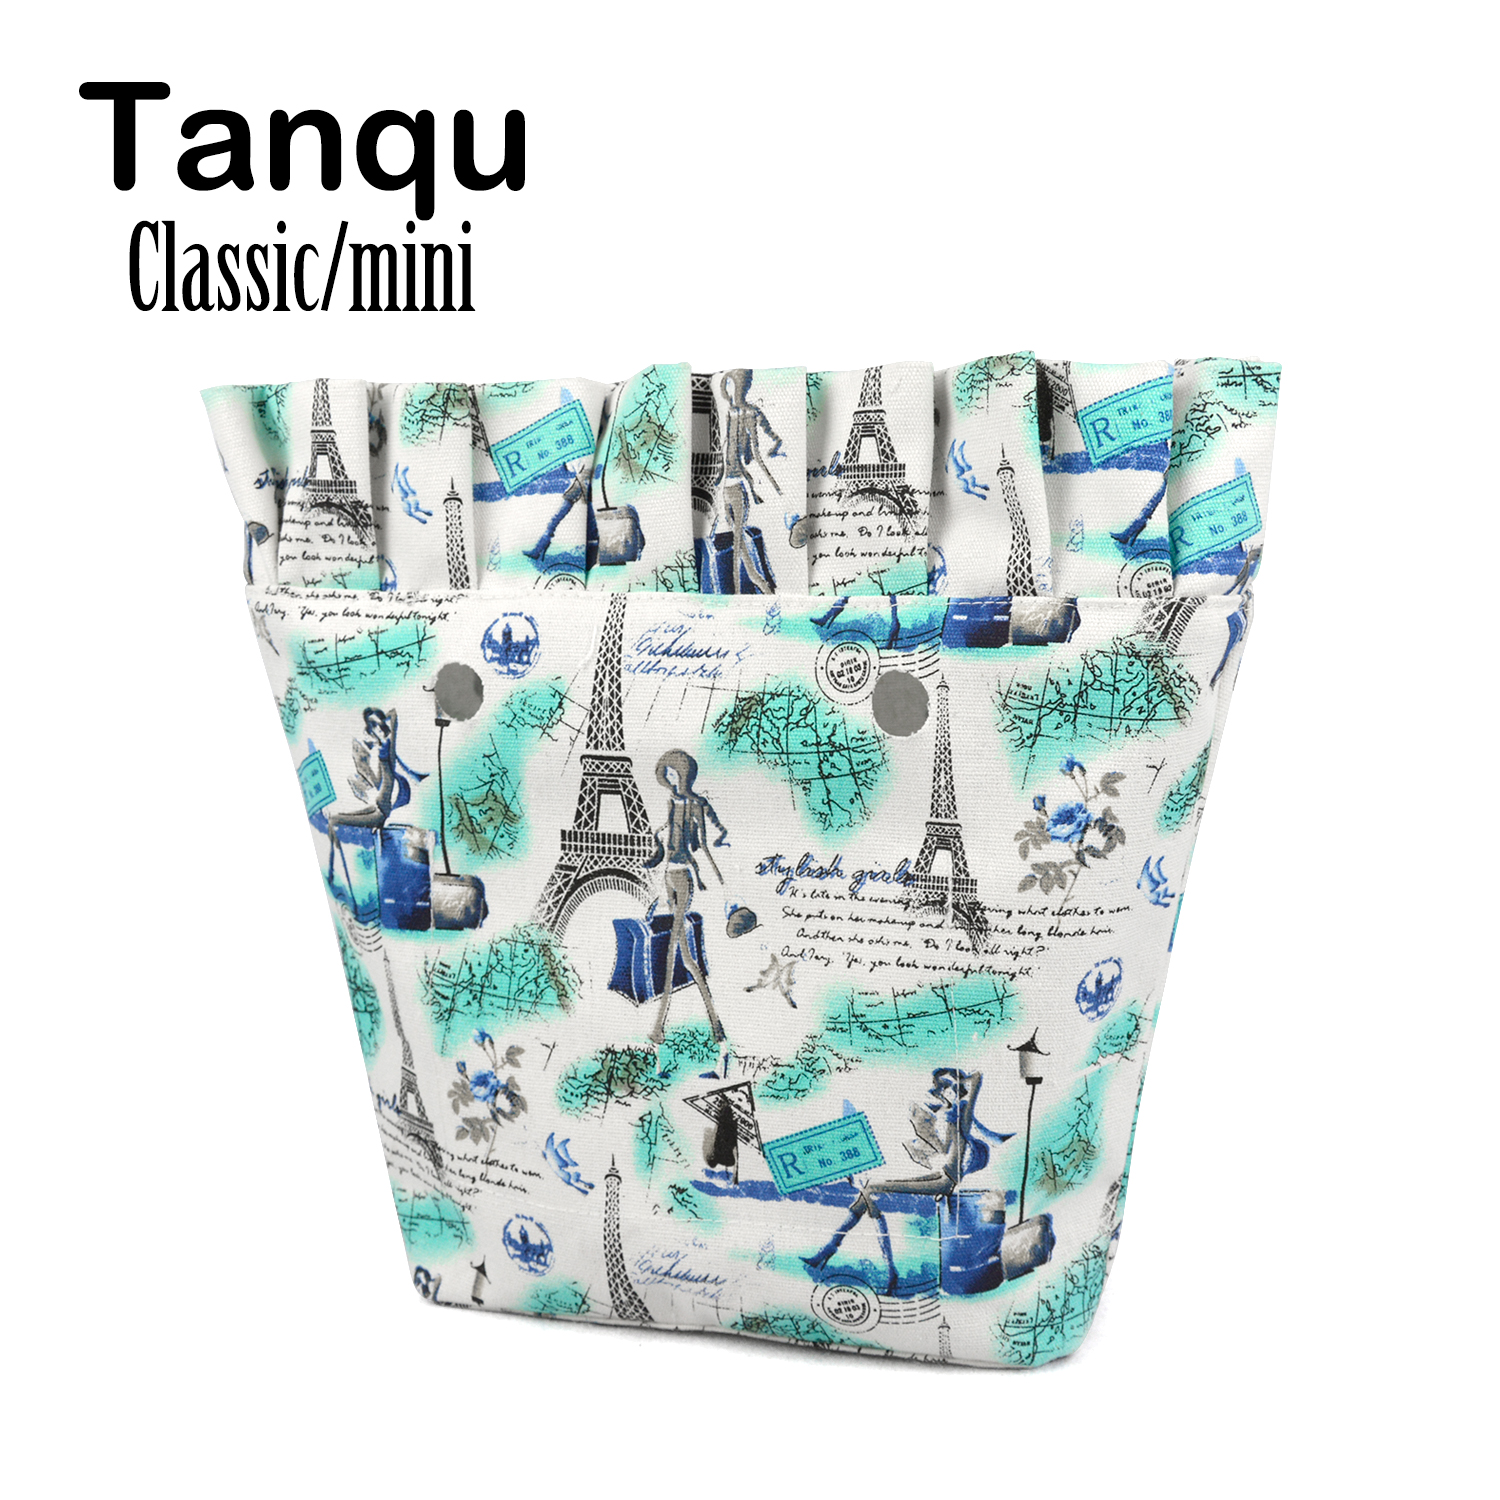 TANQU New Frill Pleat Ruffle Classic Mini Colorful Zip-up Inner Lining Insert for Big Mini Obag Canvas Inner Pocket for O Bag custom wall papers home decor flamingo sea 3d wallpaper murals tv background kitchen study bedroom living room 3d wall murals